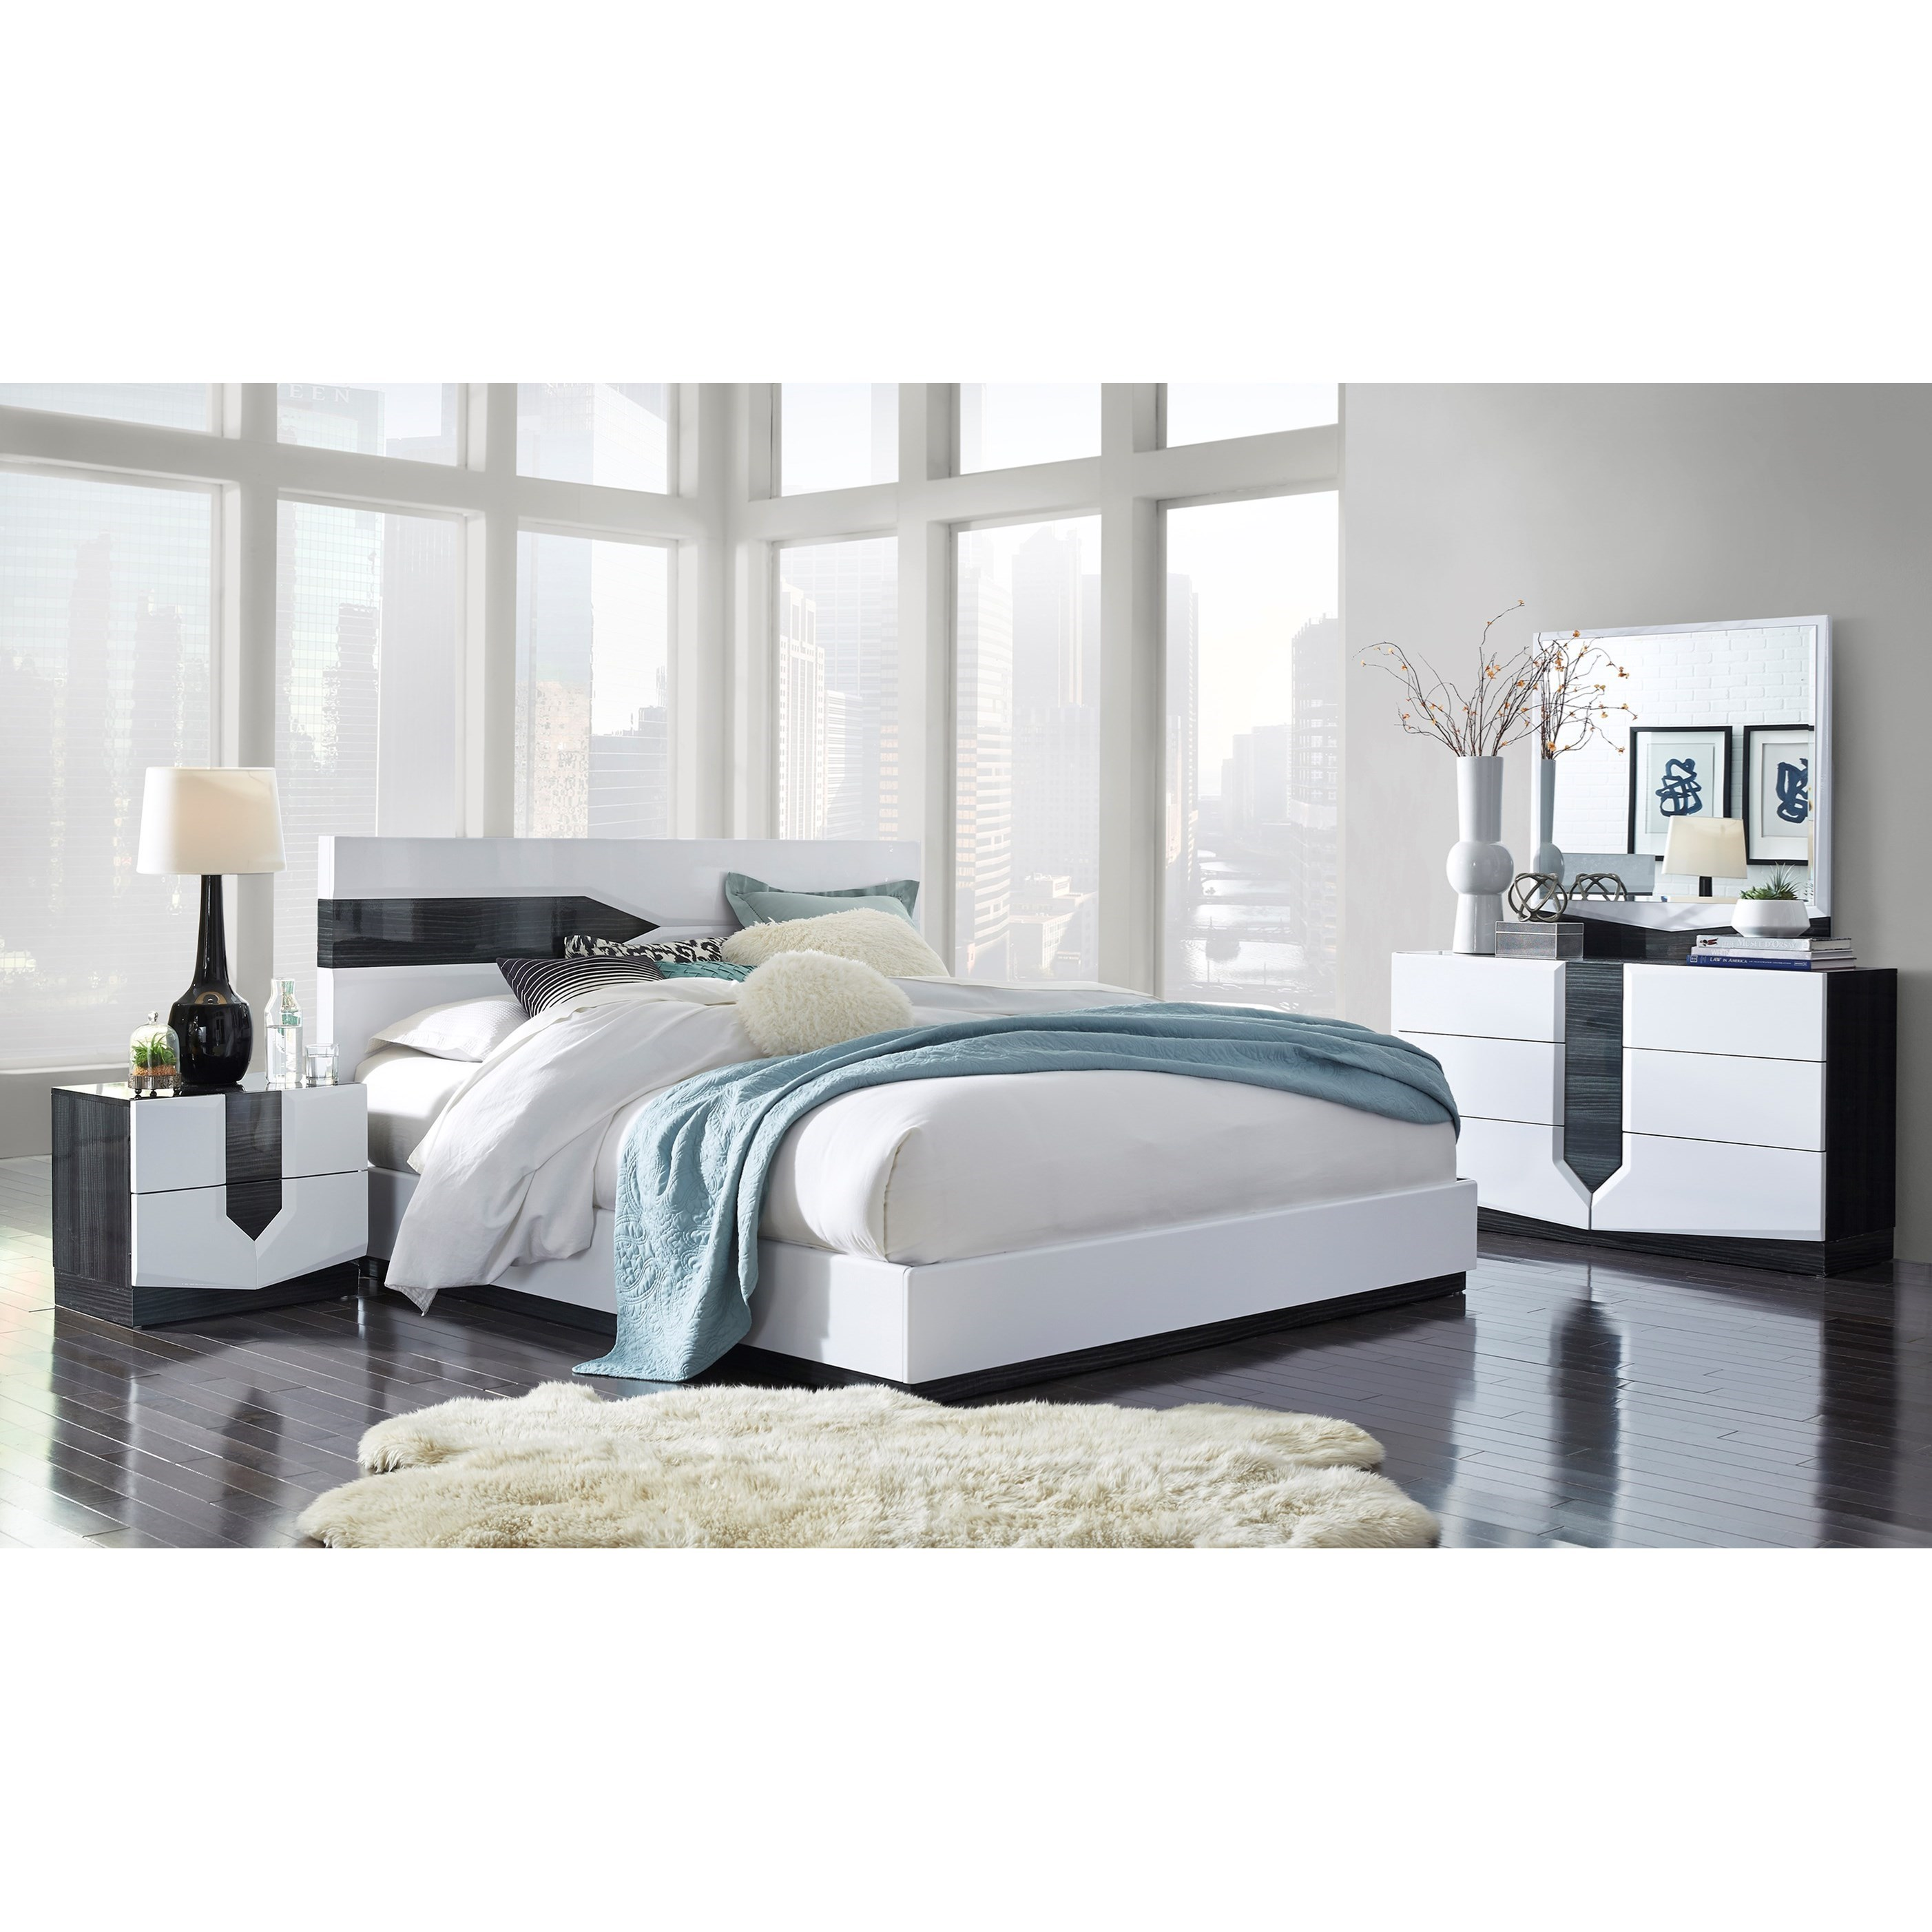 Hudson Queen Bedroom Group by Global Furniture at Nassau Furniture and Mattress